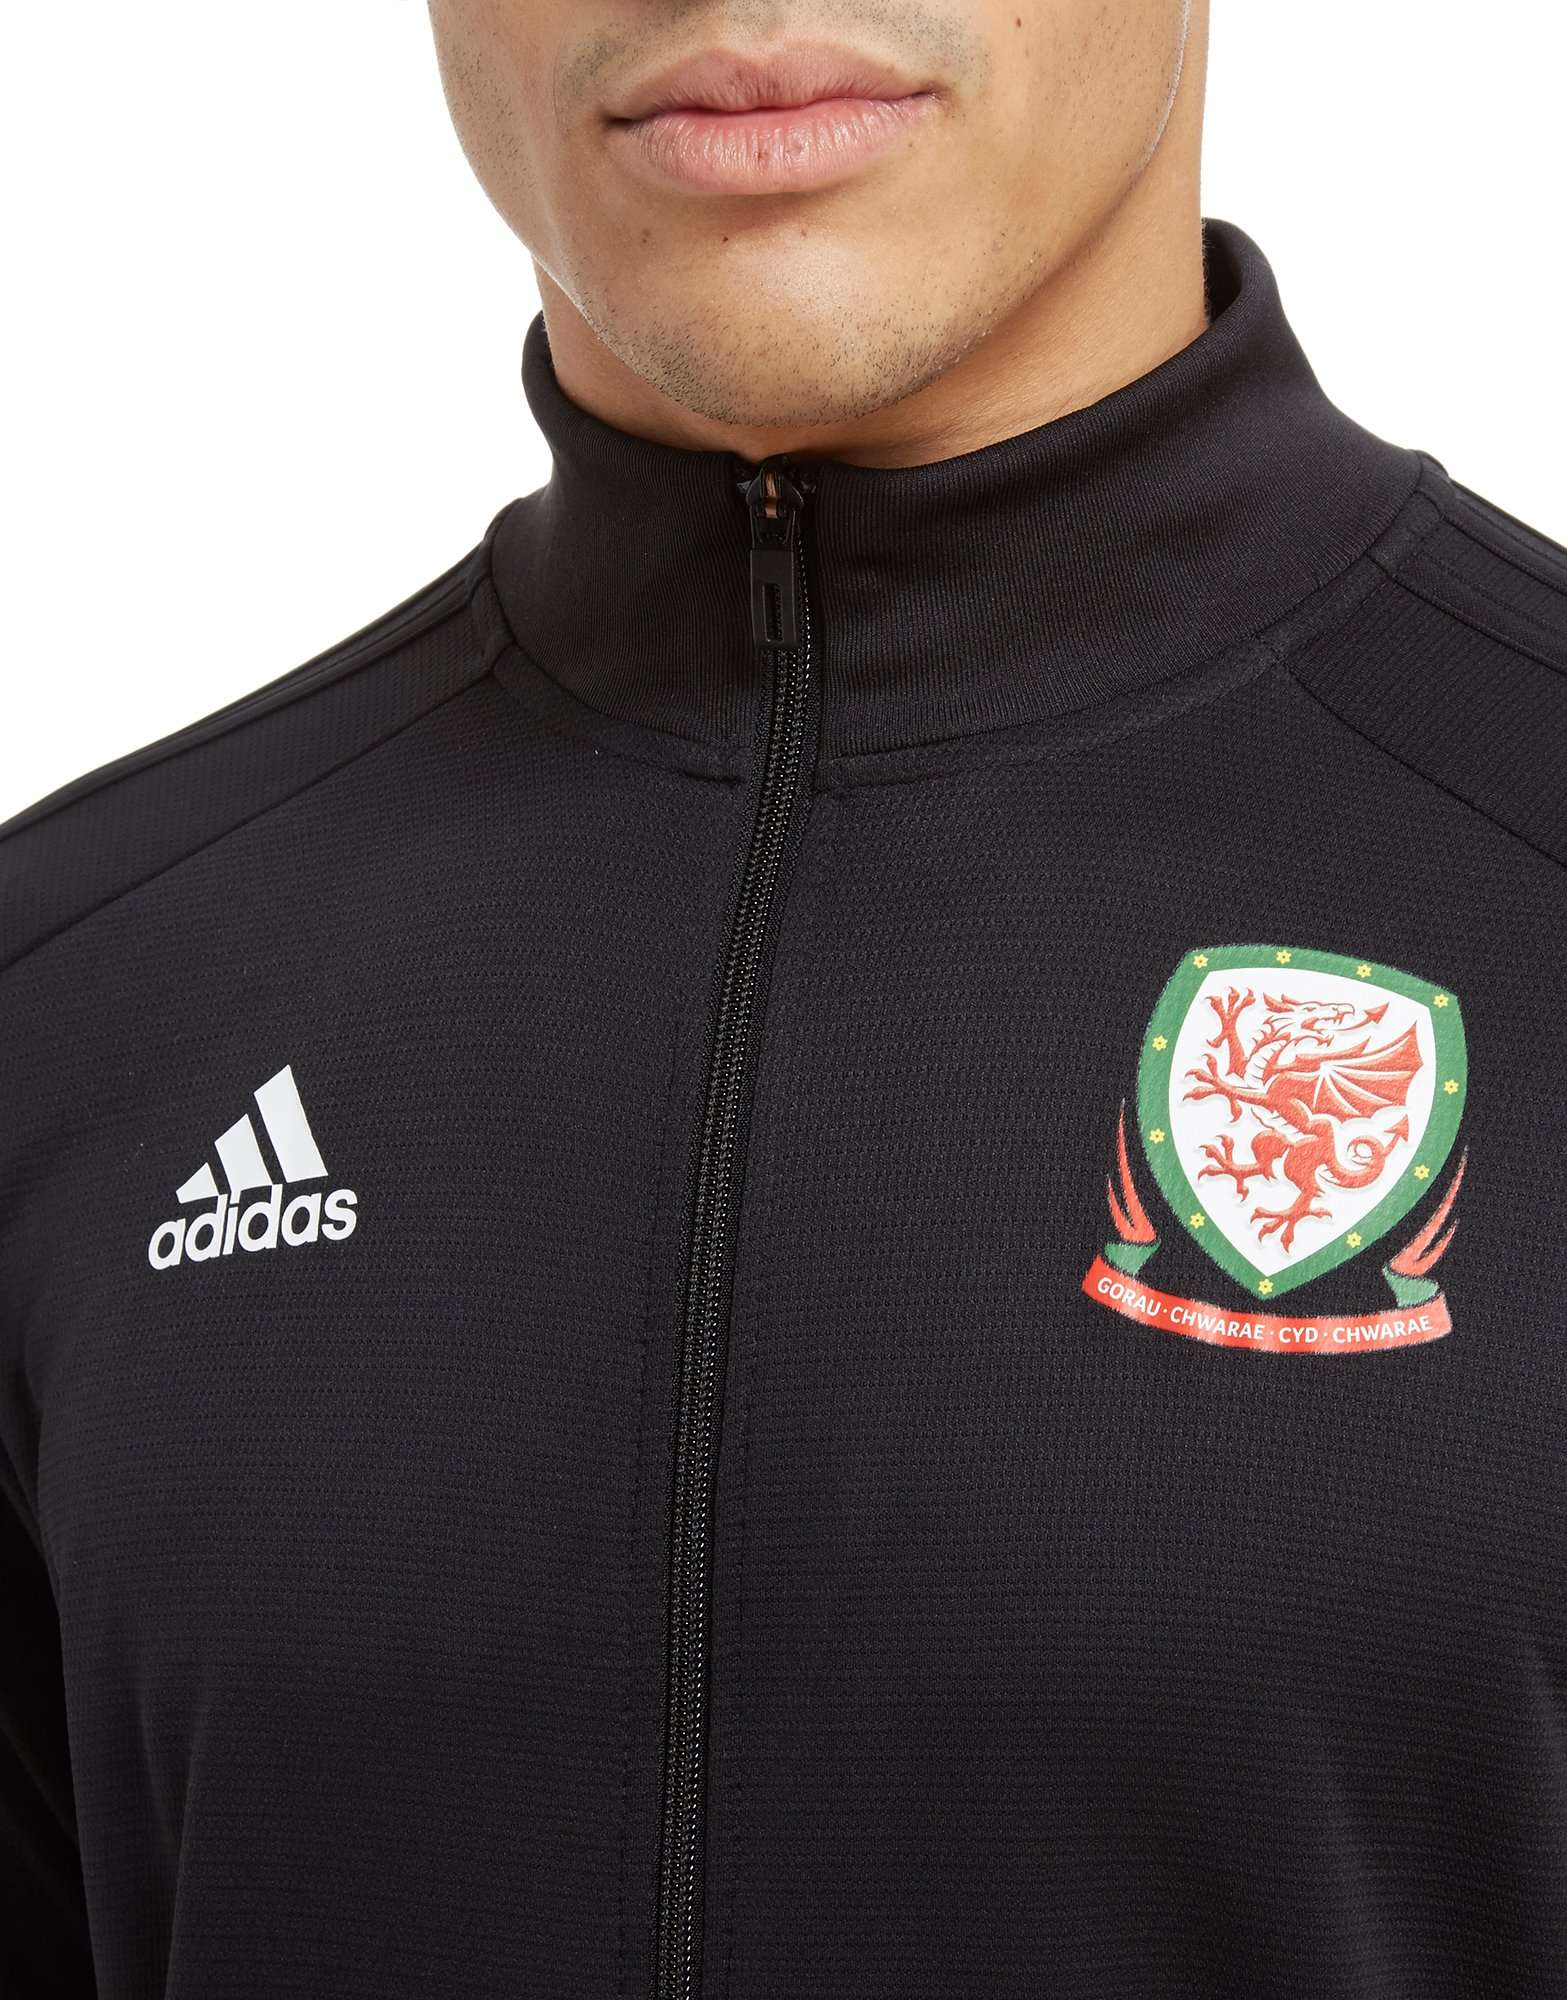 adidas FA Wales 2018/19 Full Zip Track Top